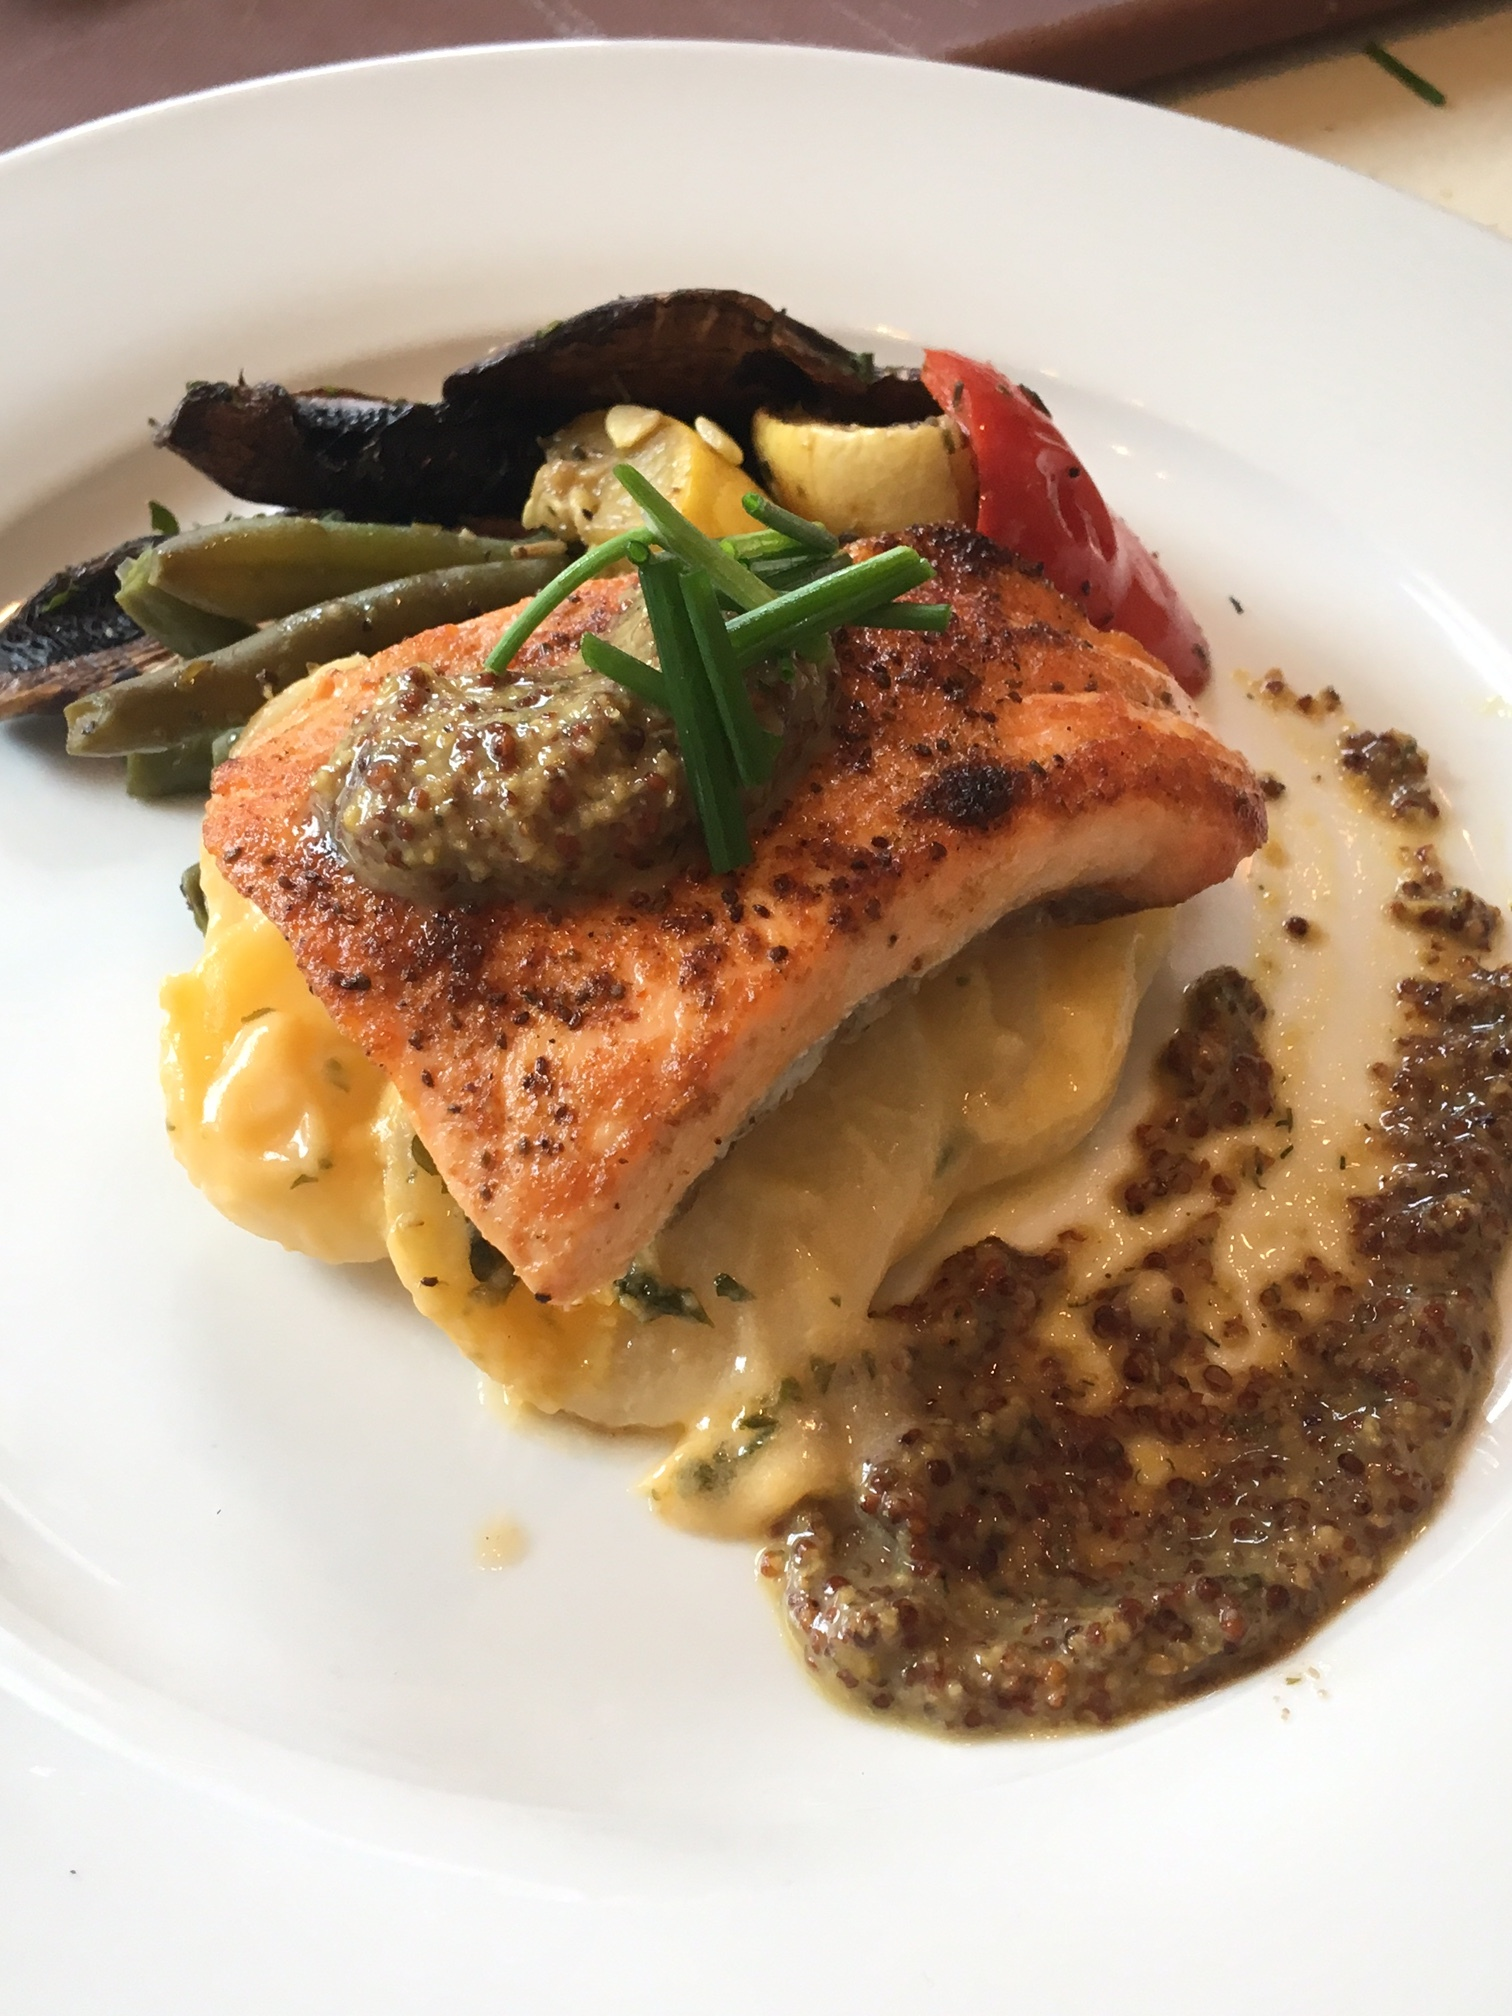 Salmon Filet with Honey and Whole Grain Mustard